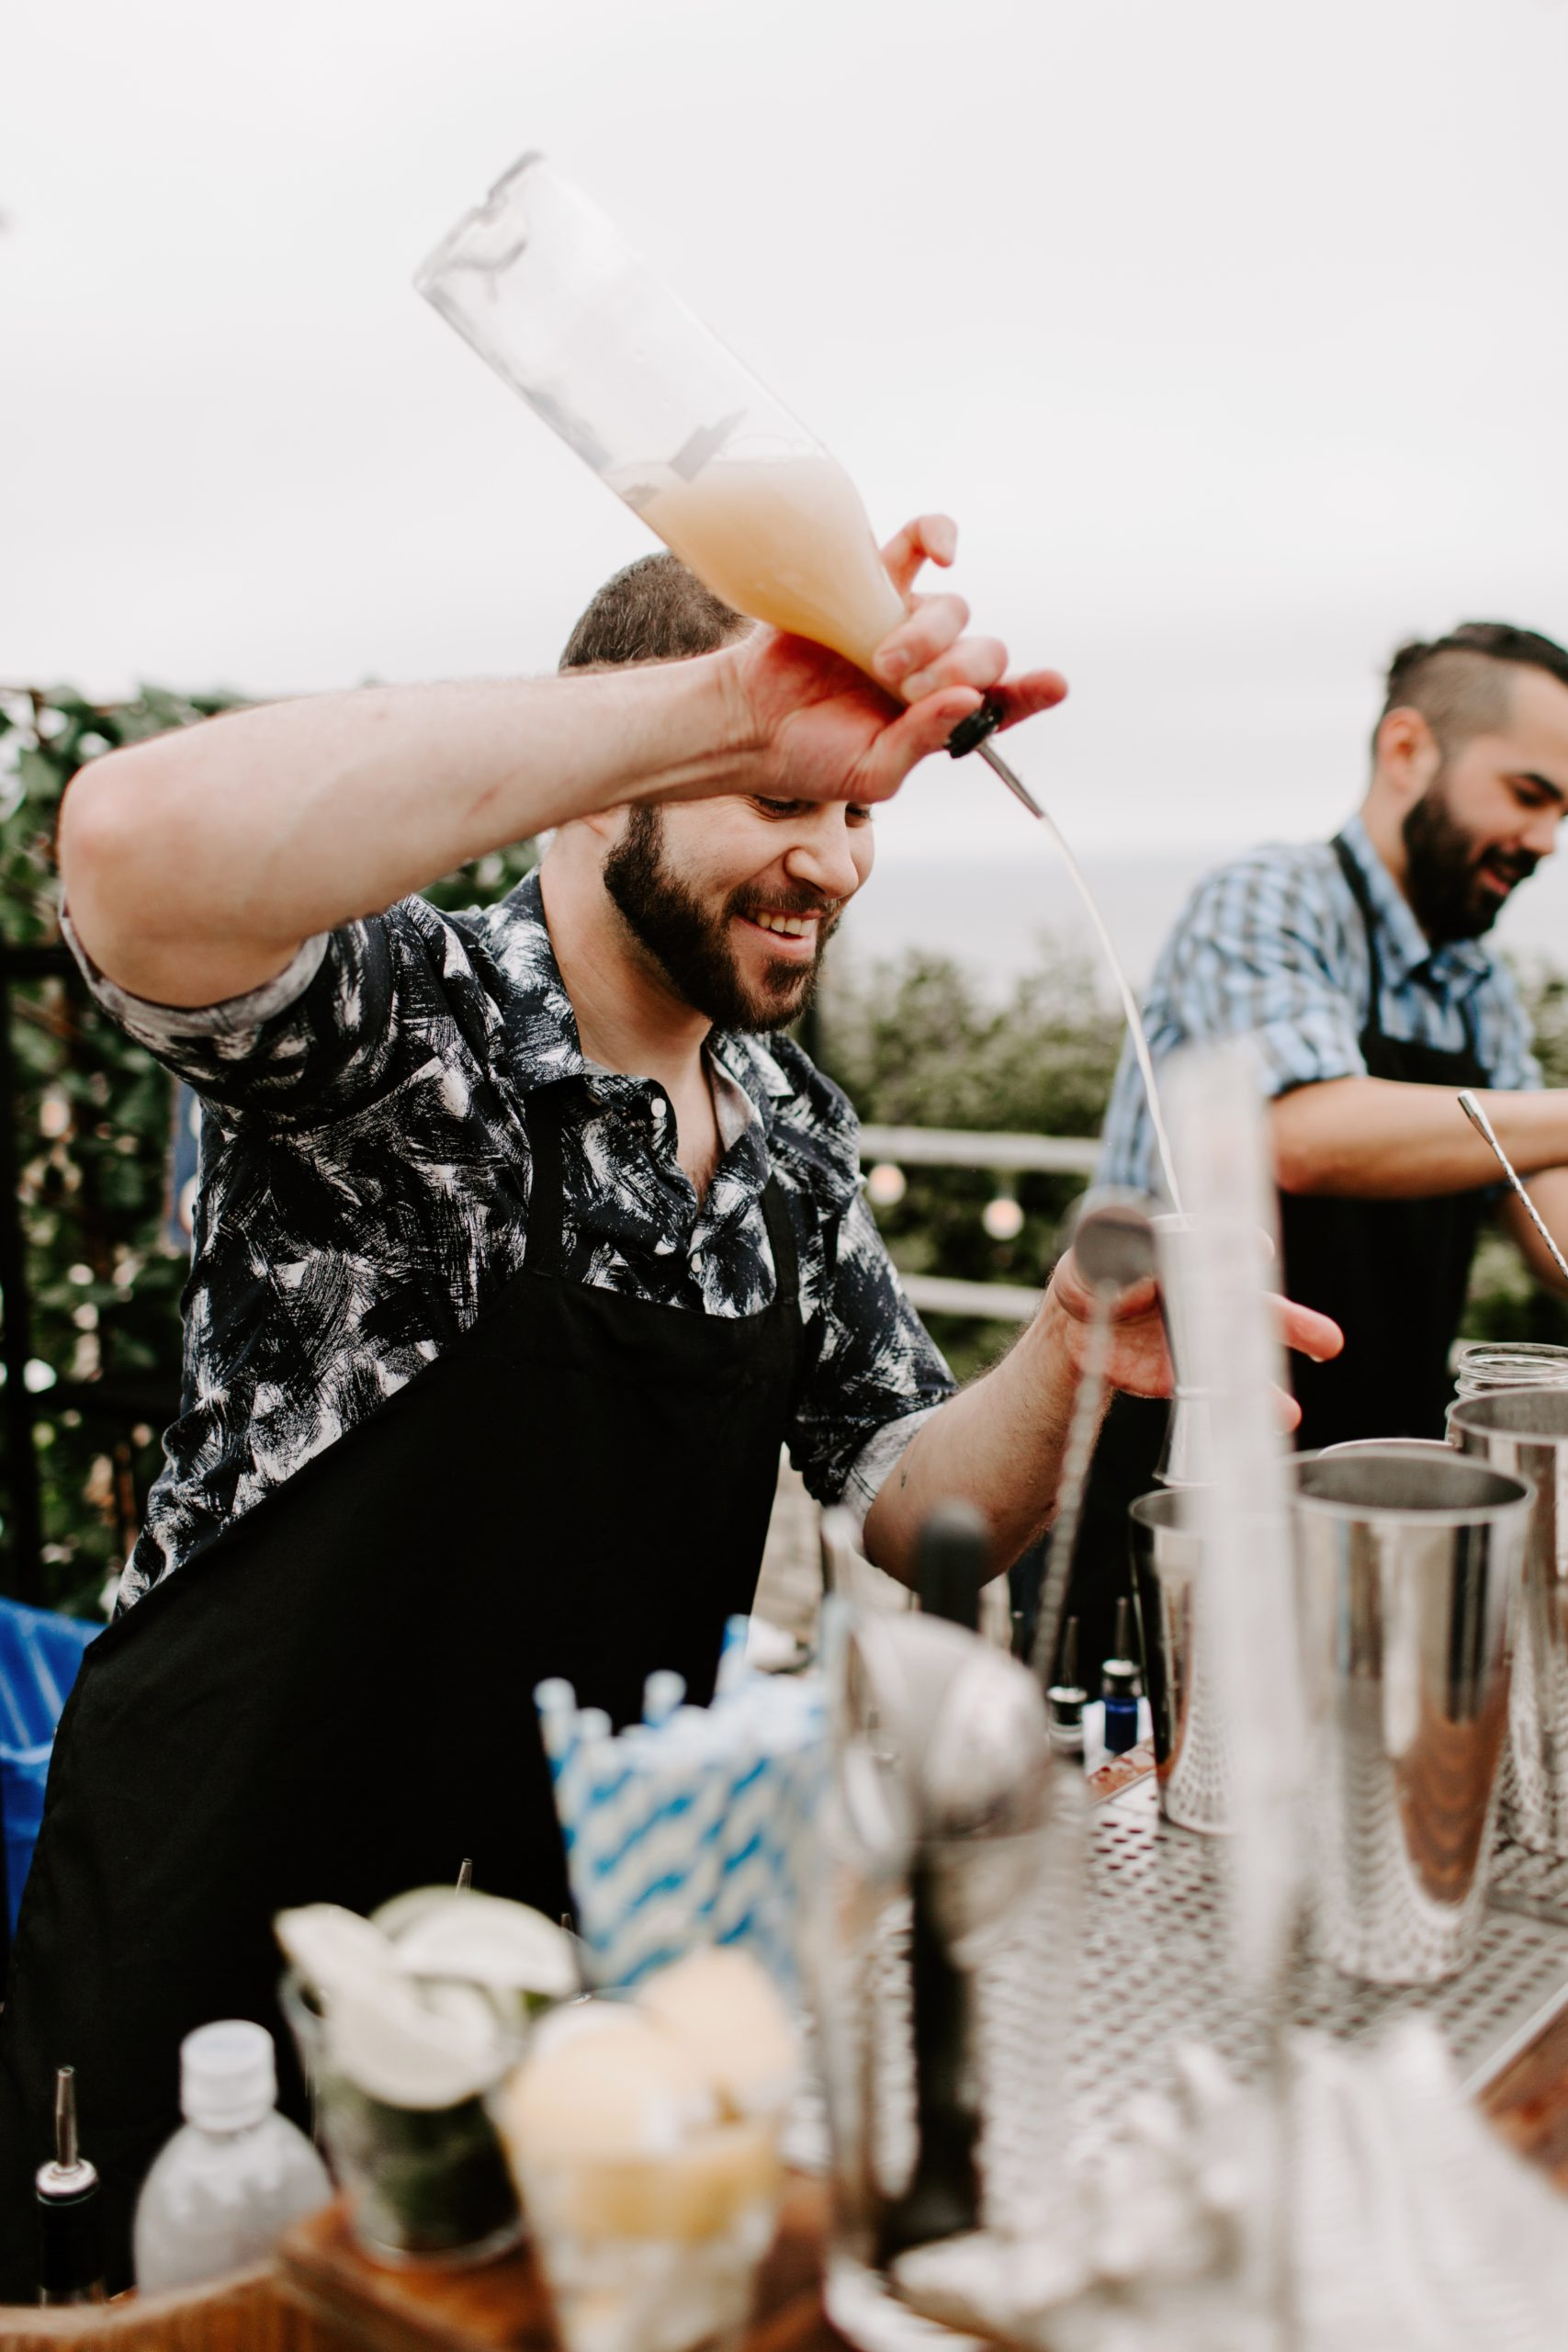 Bartender pours drinks at outdoor wedding